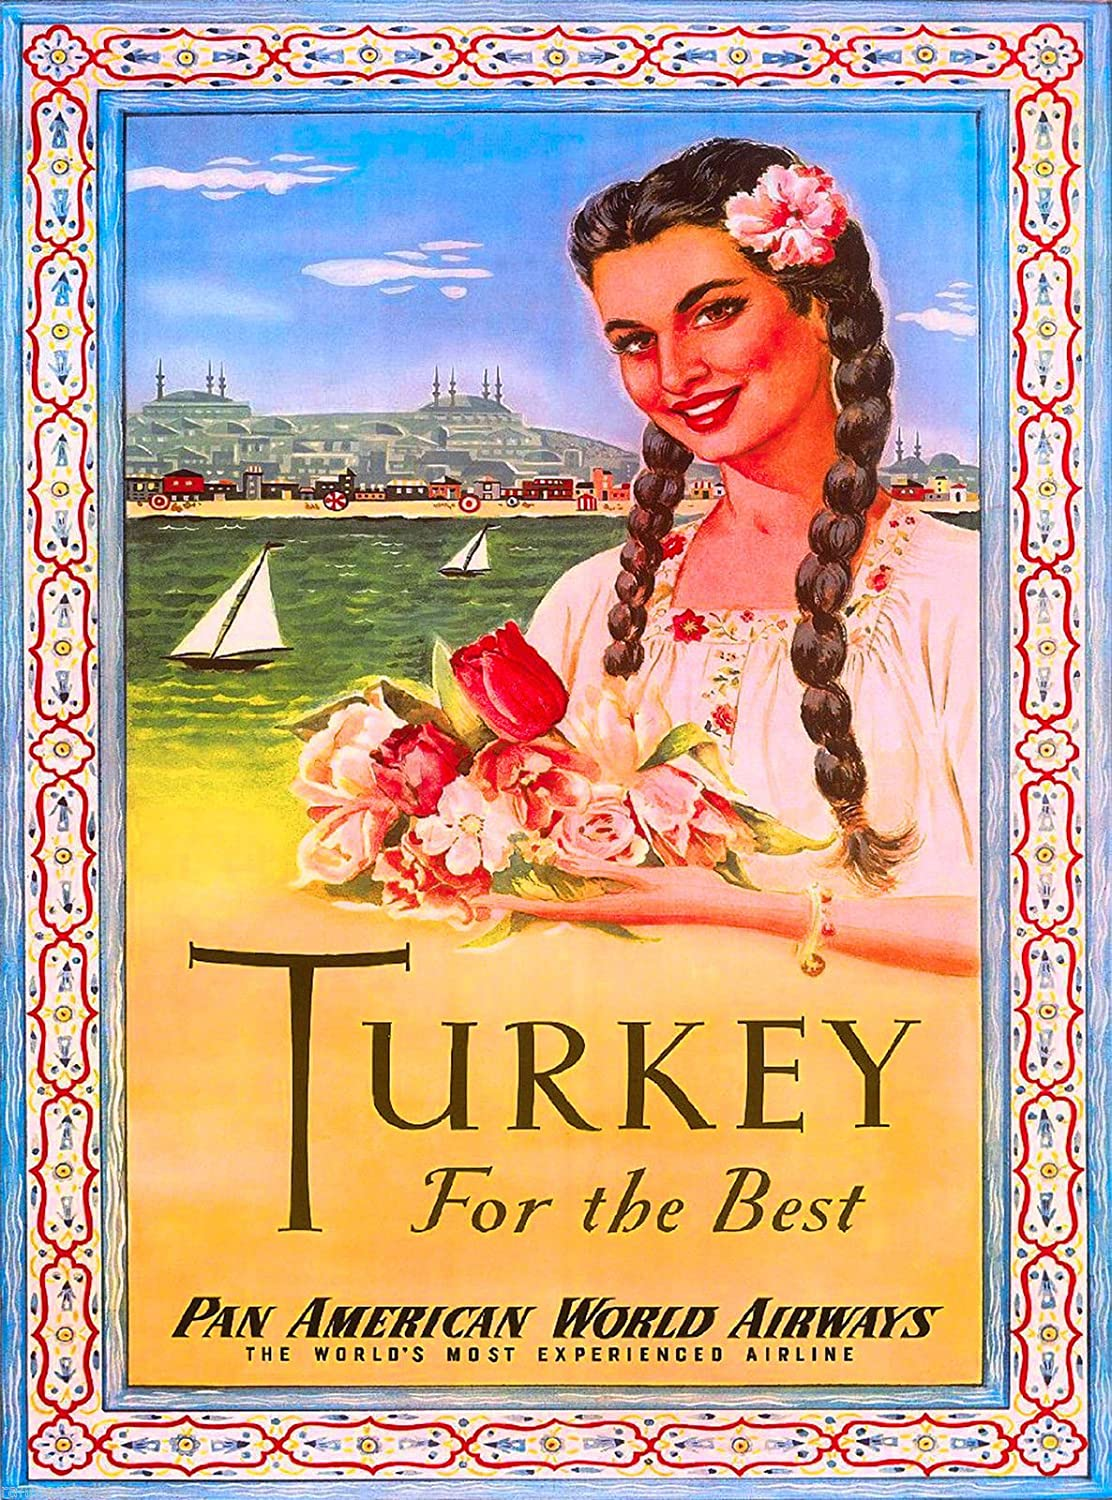 A Slice In Time Beautiful Girl Turkey Turkish Airplane Vintage Travel Art Advertisement Poster Posters Prints